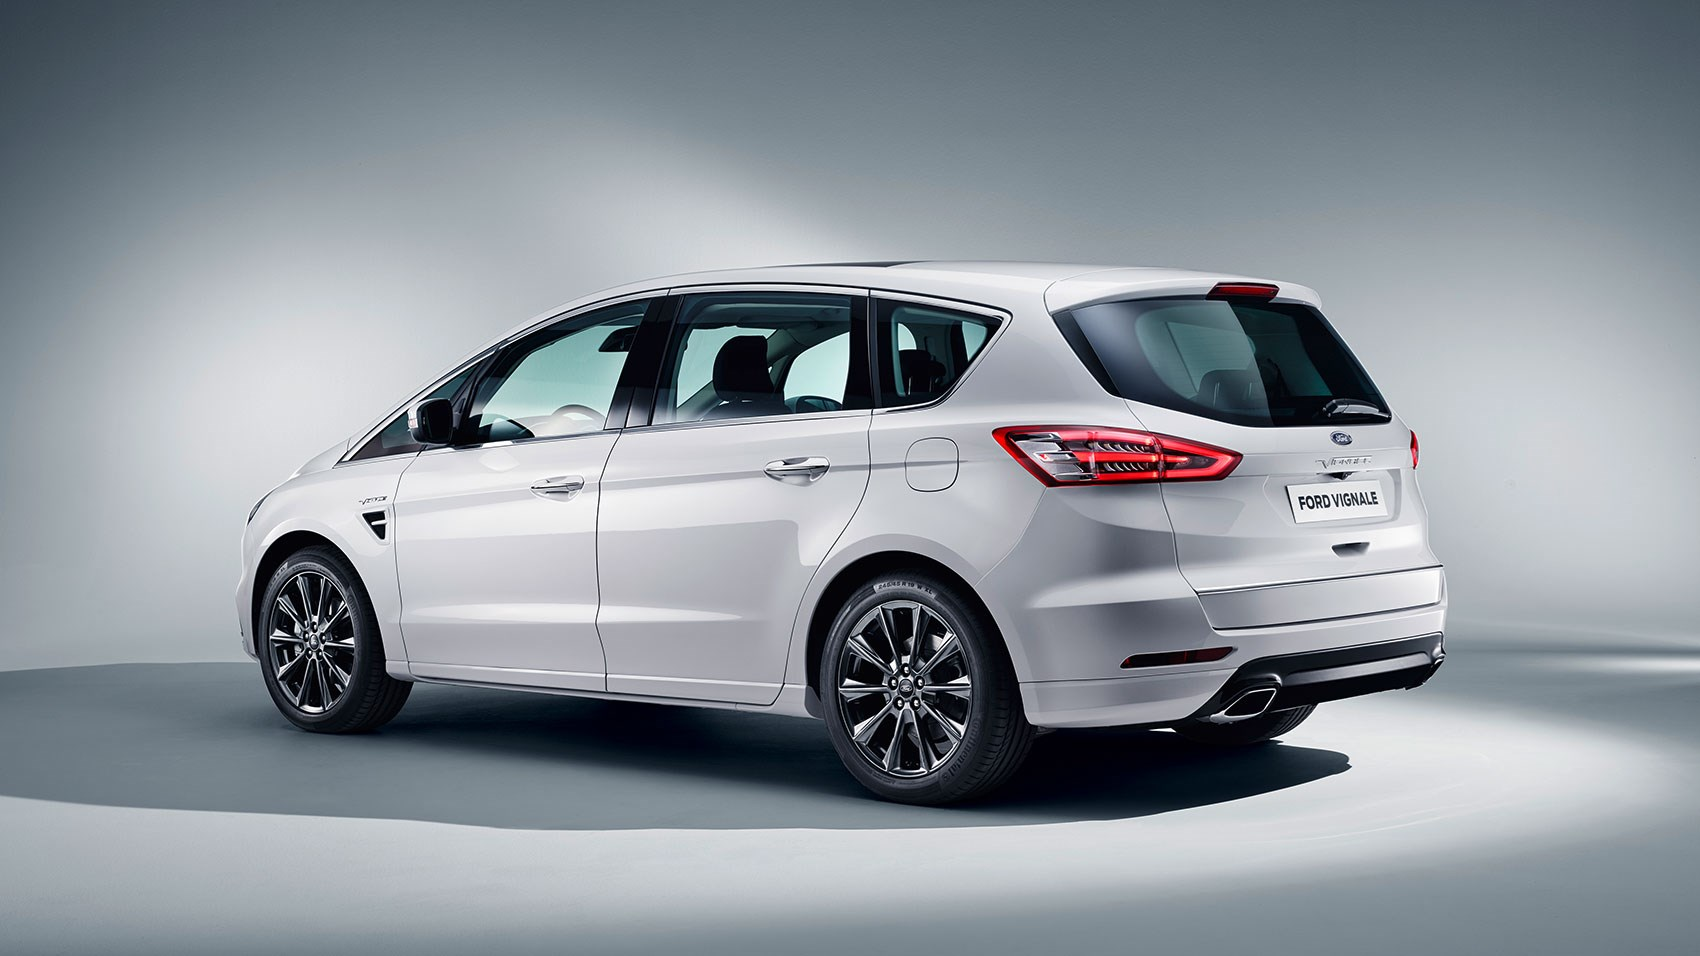 Ford S-Max #21